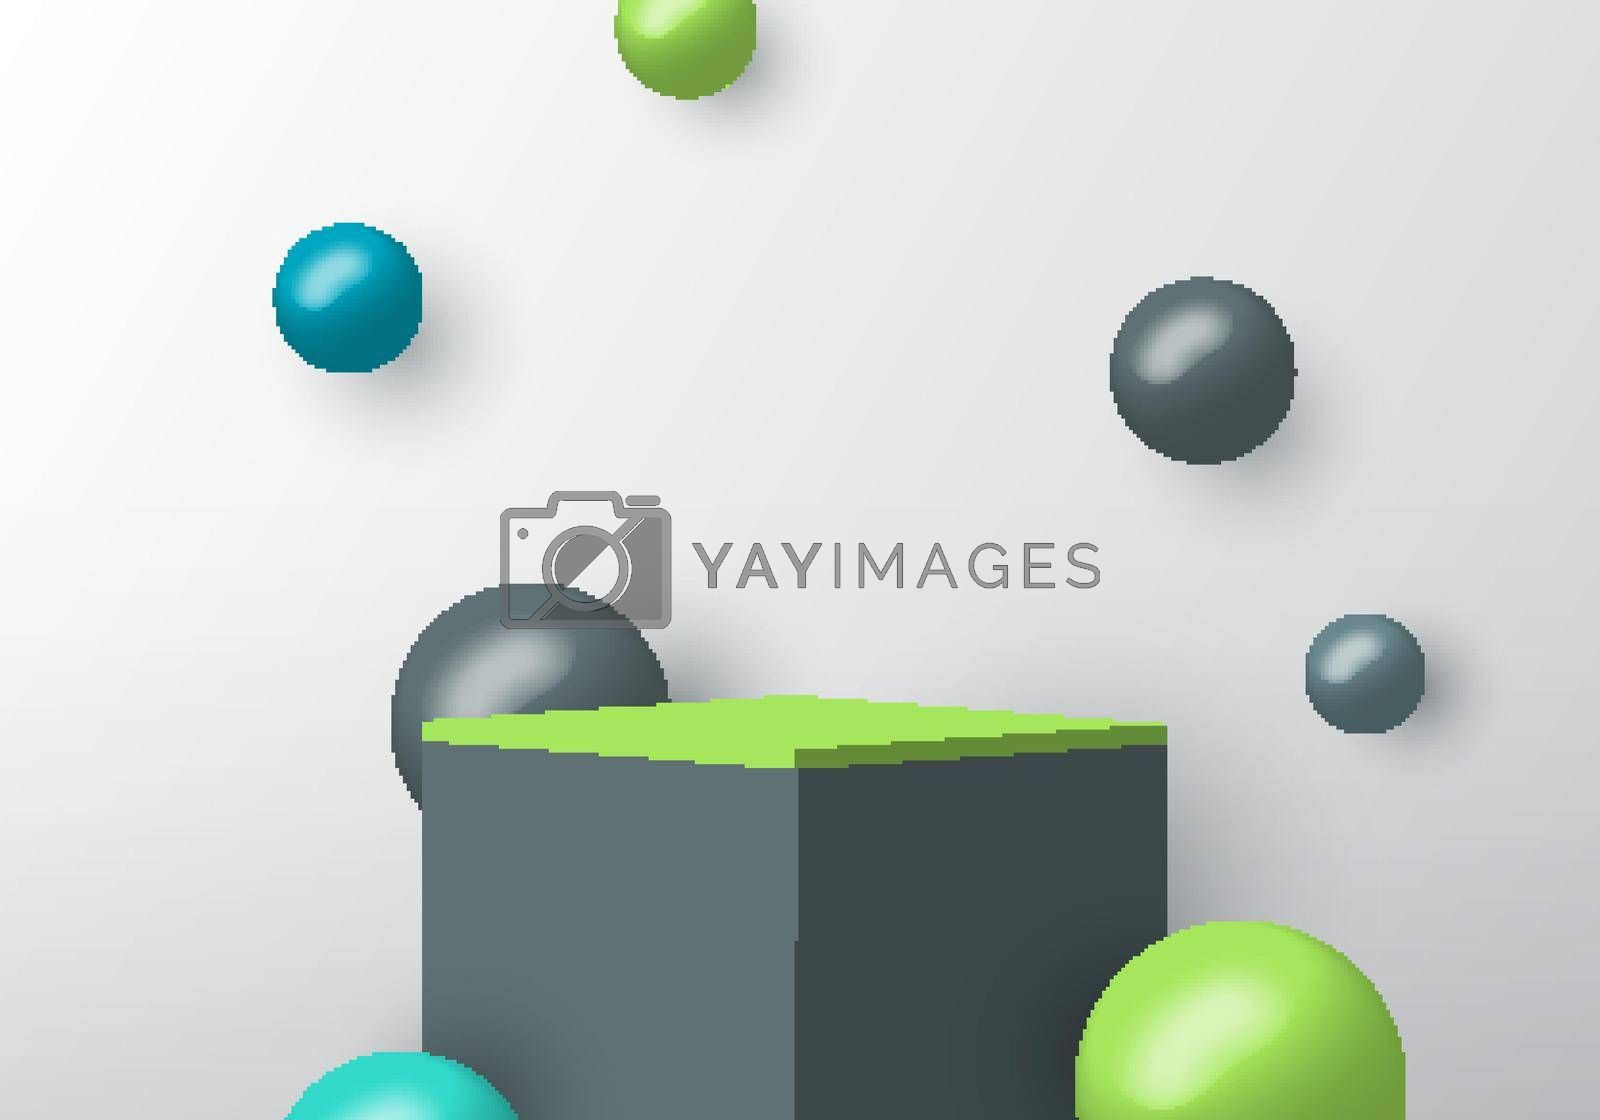 Royalty free image of 3D realistic gray and green square podium for your product showcase with sphere ball decoration on white background by phochi